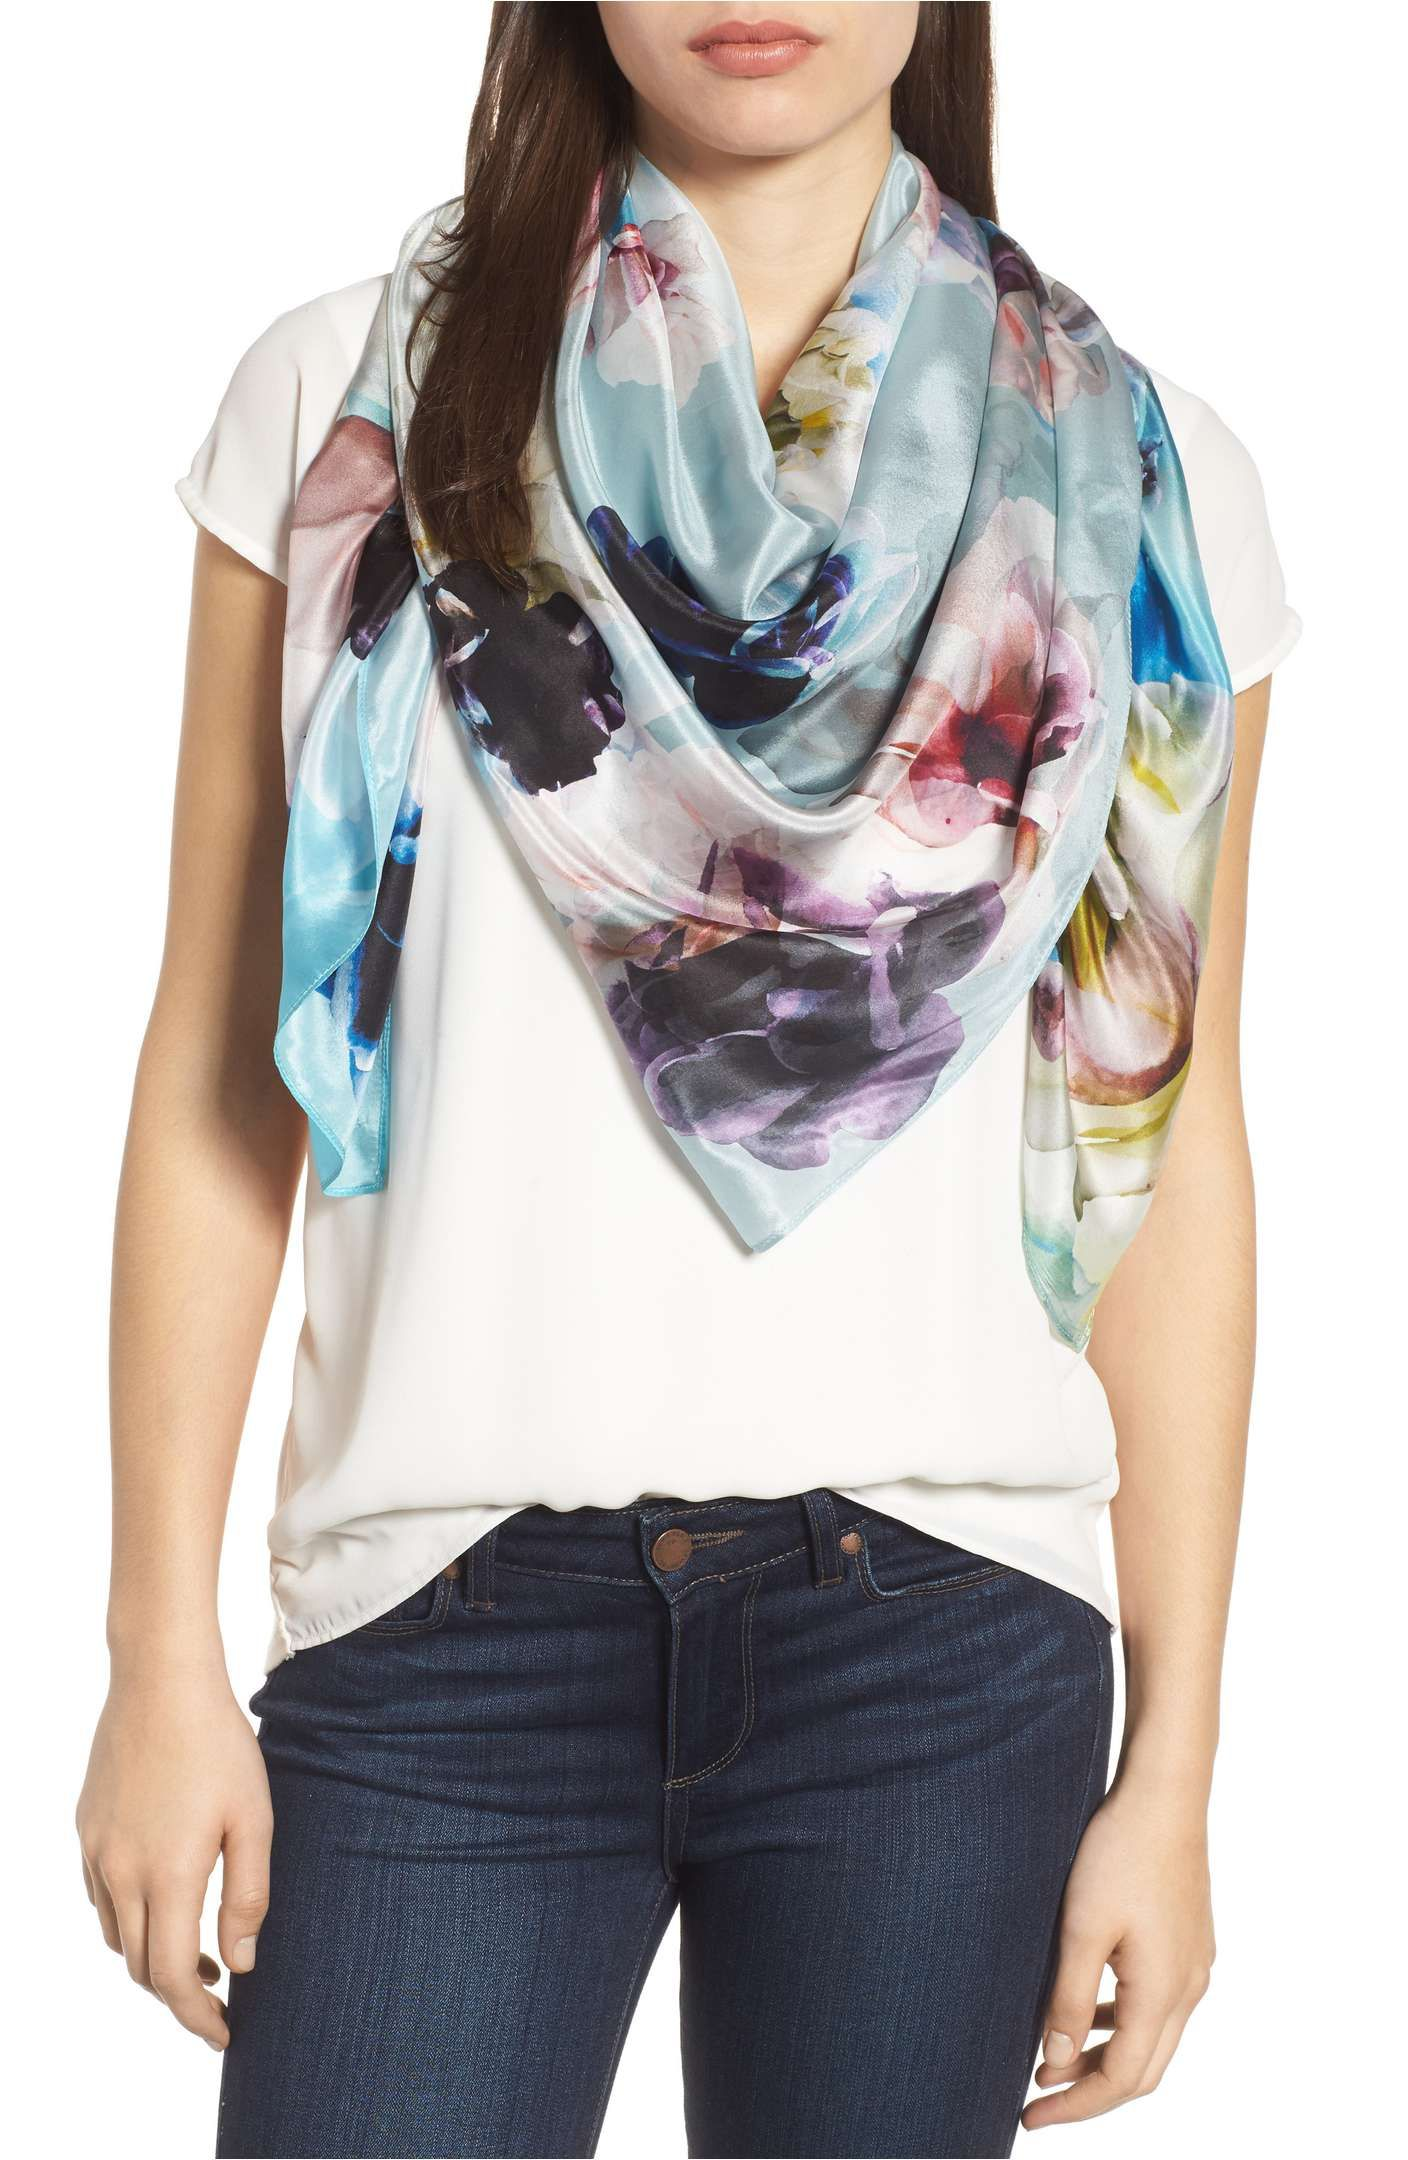 42ad3e853 Main Image - Nordstrom Print Silk Square Scarf   Clothes for spring ...